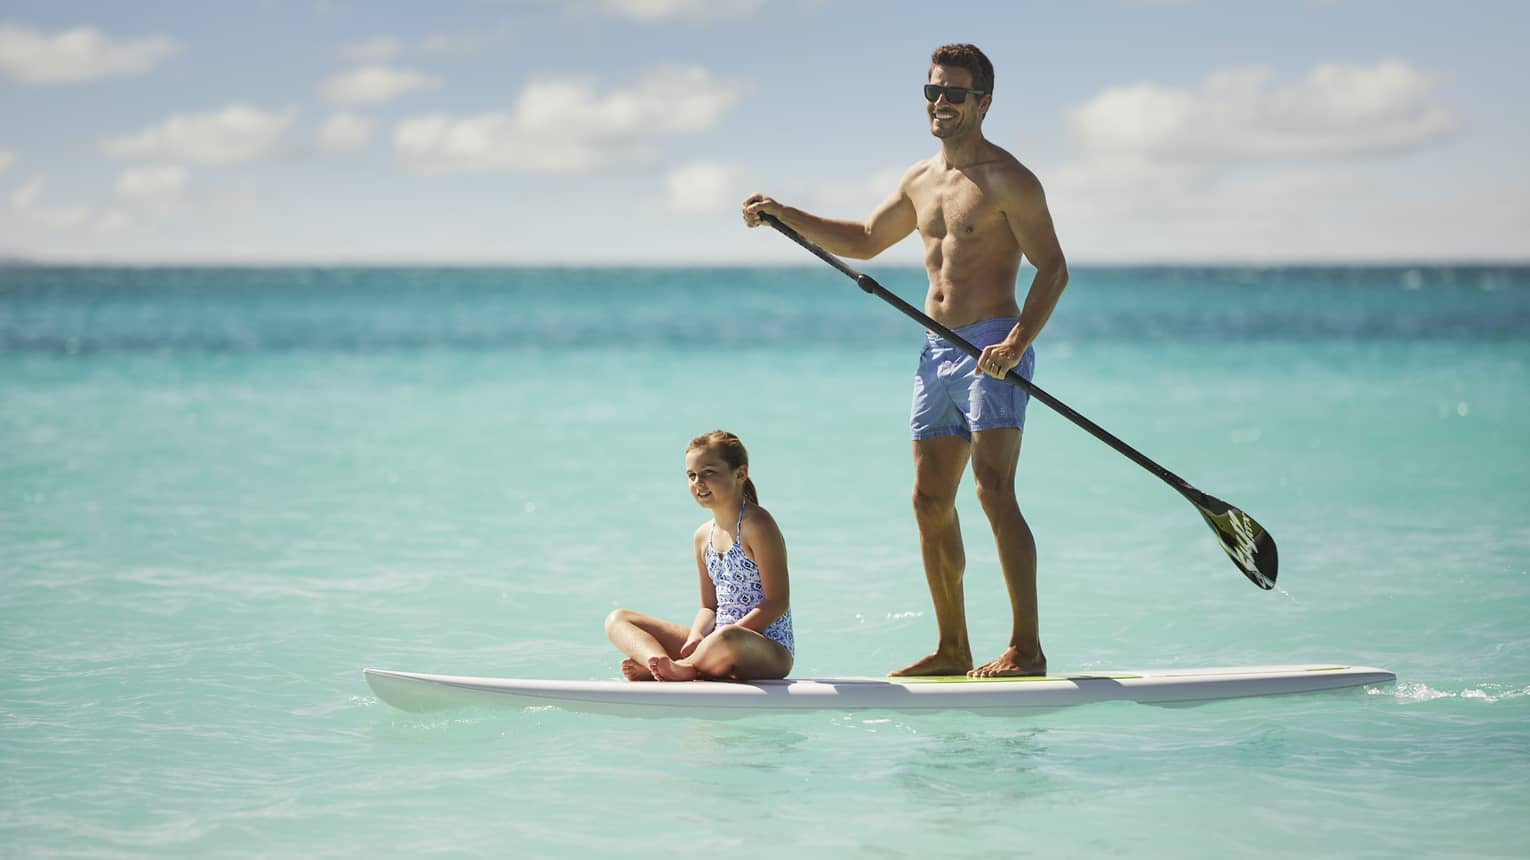 Man stands on paddleboard holding paddle as young girl in swimsuit sits cross-legged on board